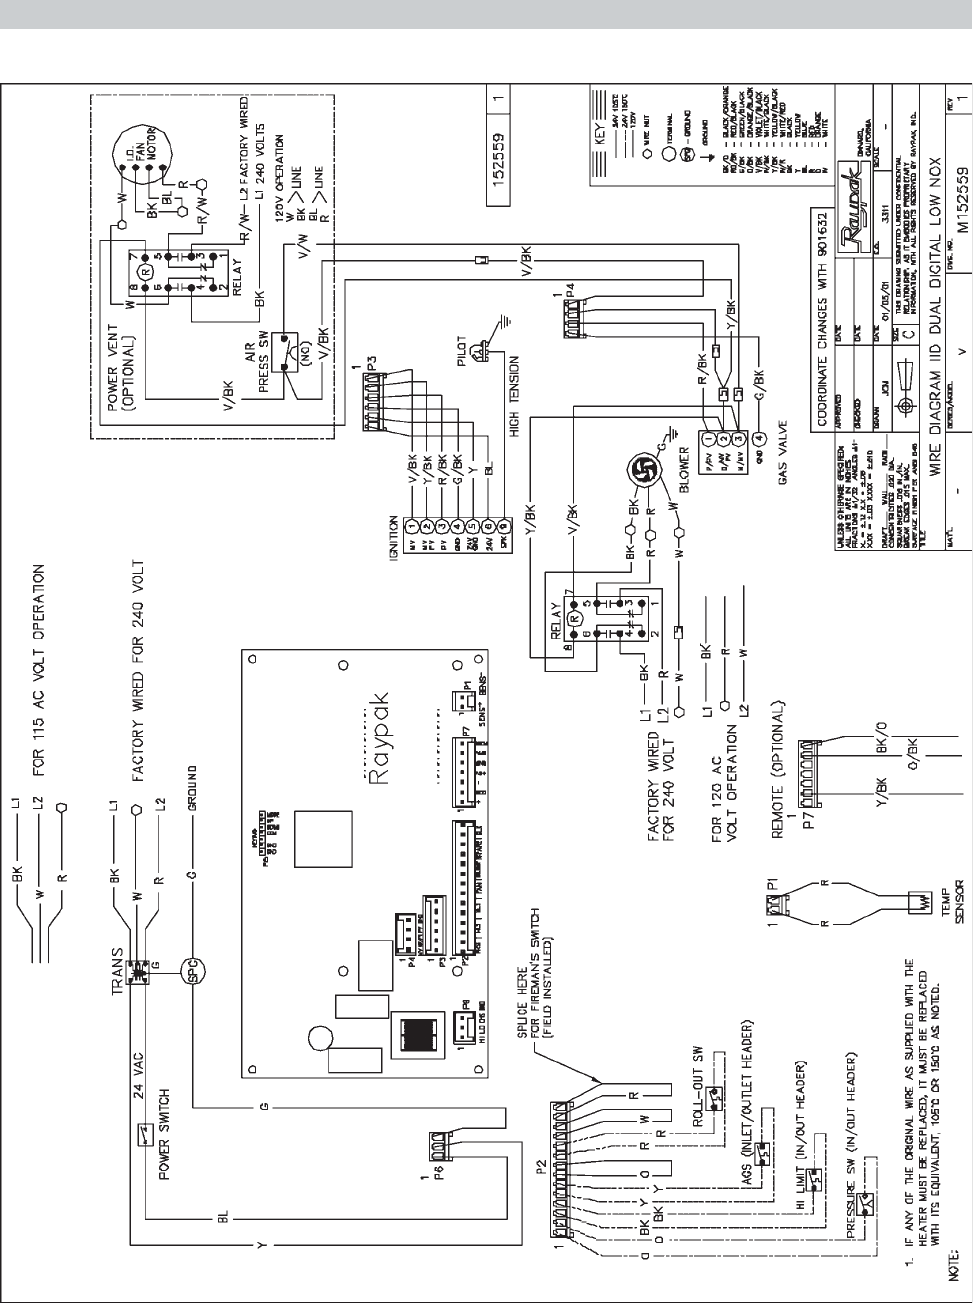 N64 Controller Wiring Diagram from pdfasset.owneriq.net